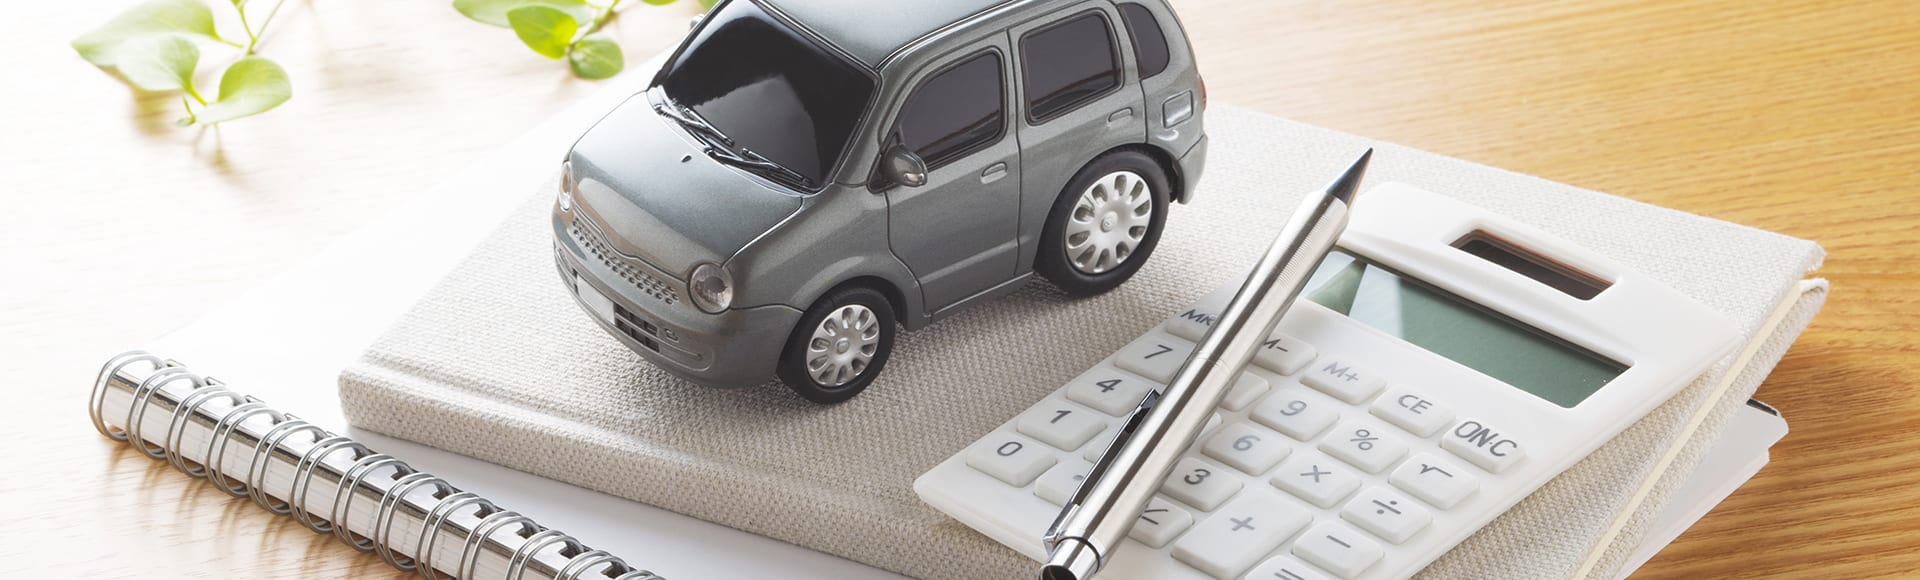 vehicle loans with car and calculator